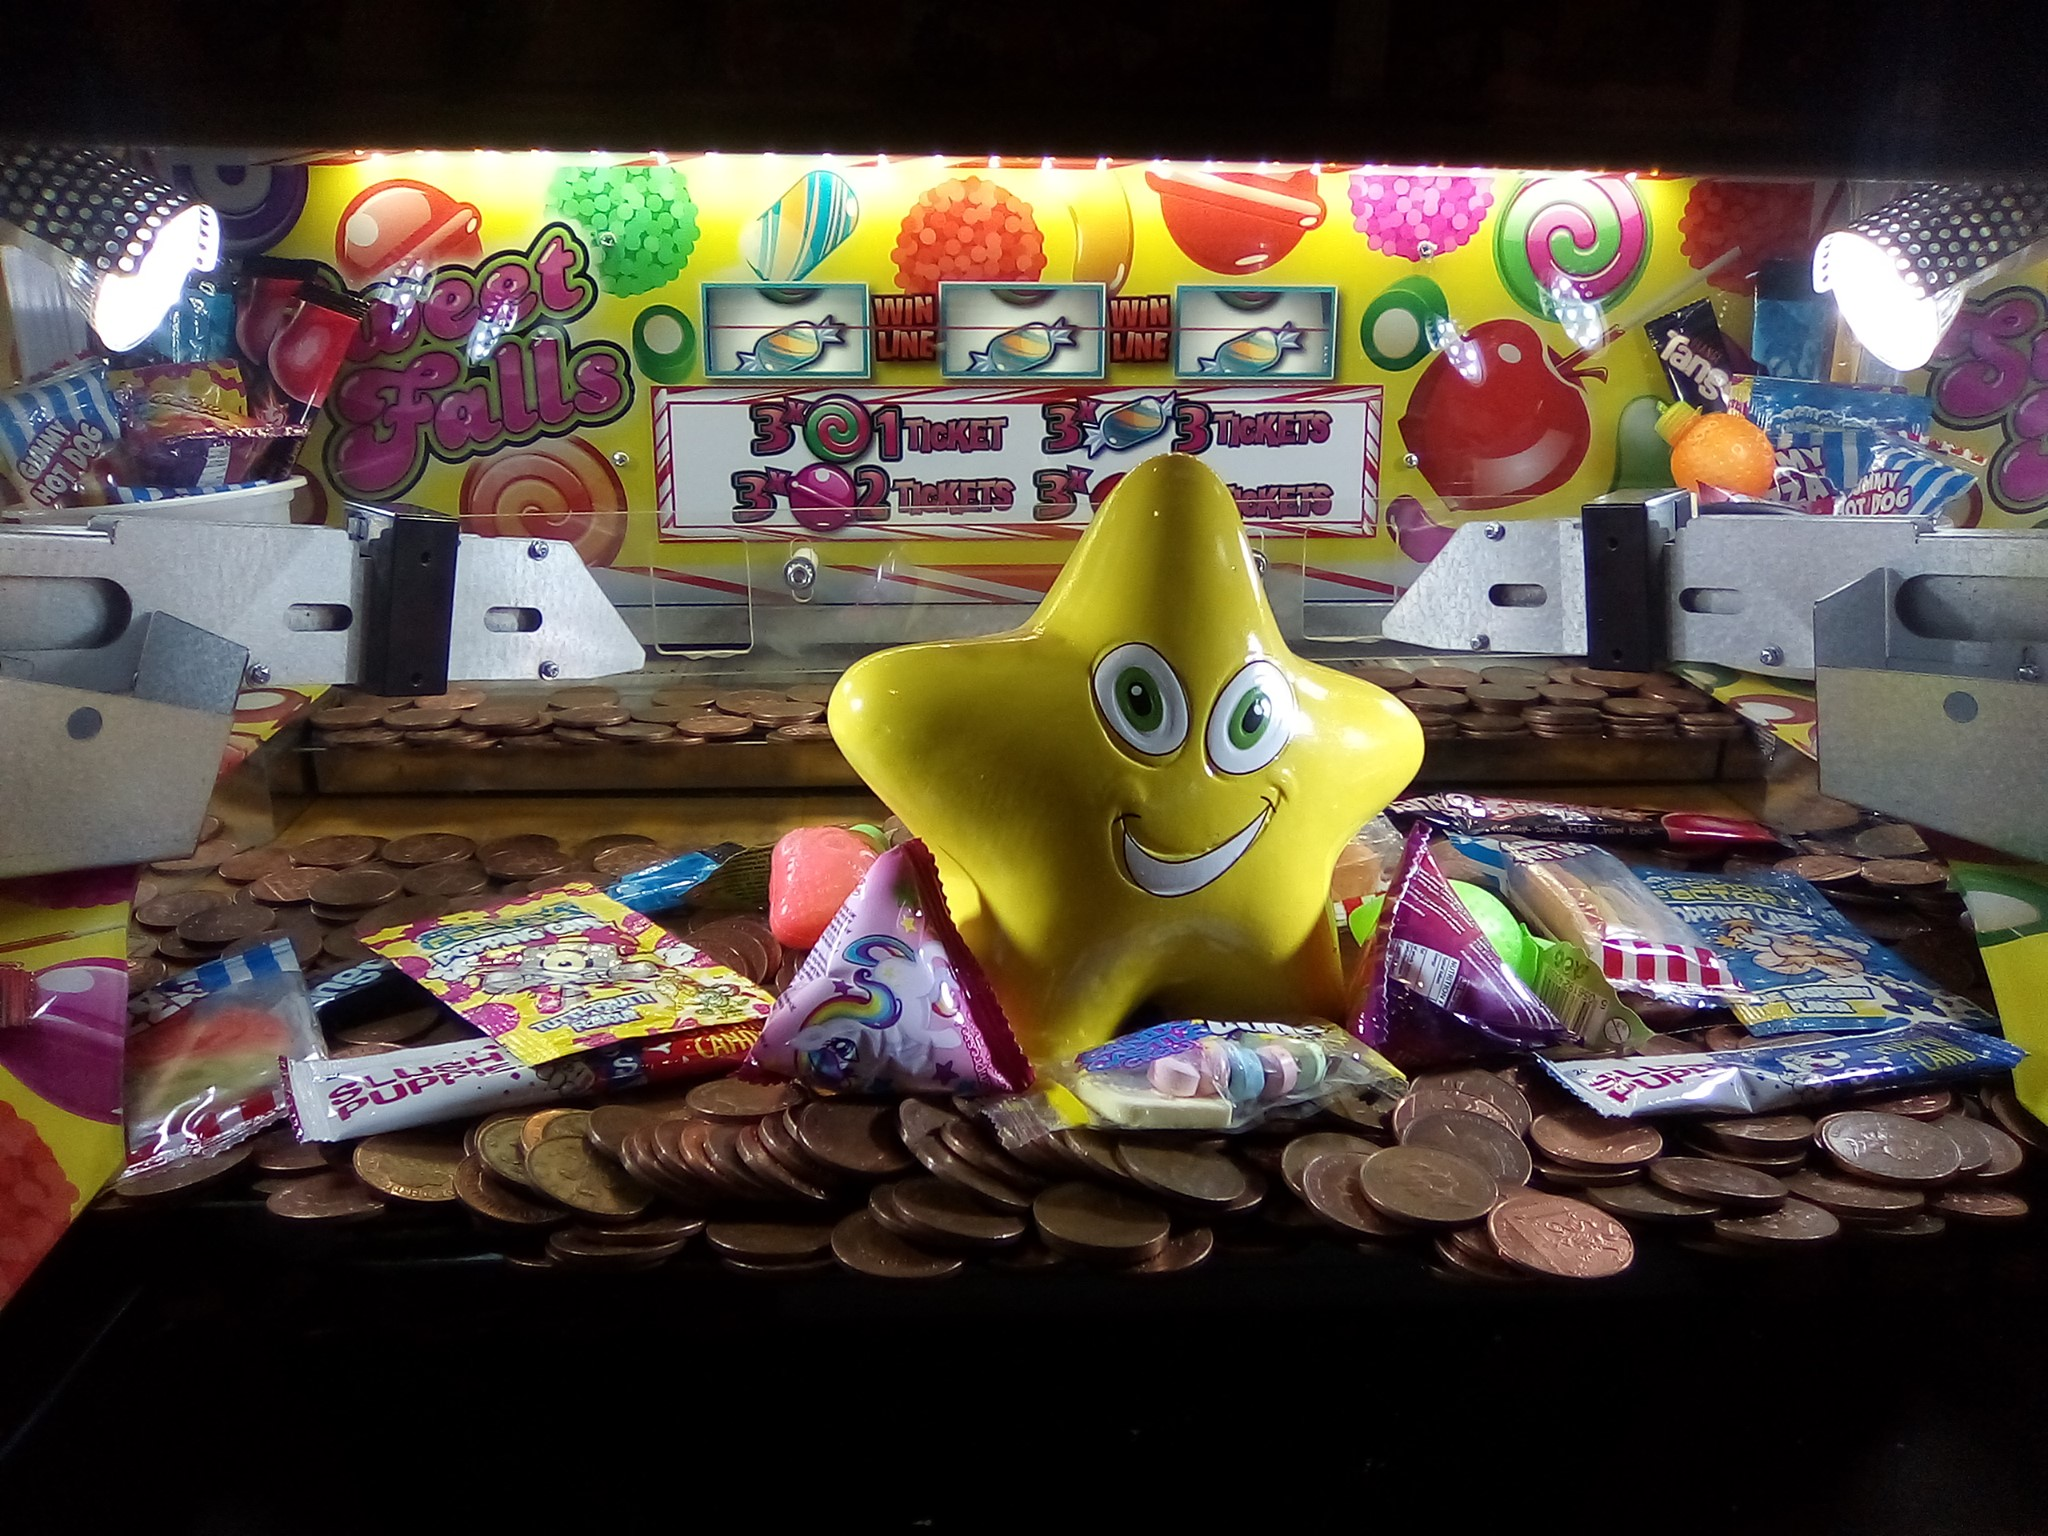 A shiny yellow star and some packets of sweeties sit on top of a pile of 2ps in a fairground machine.